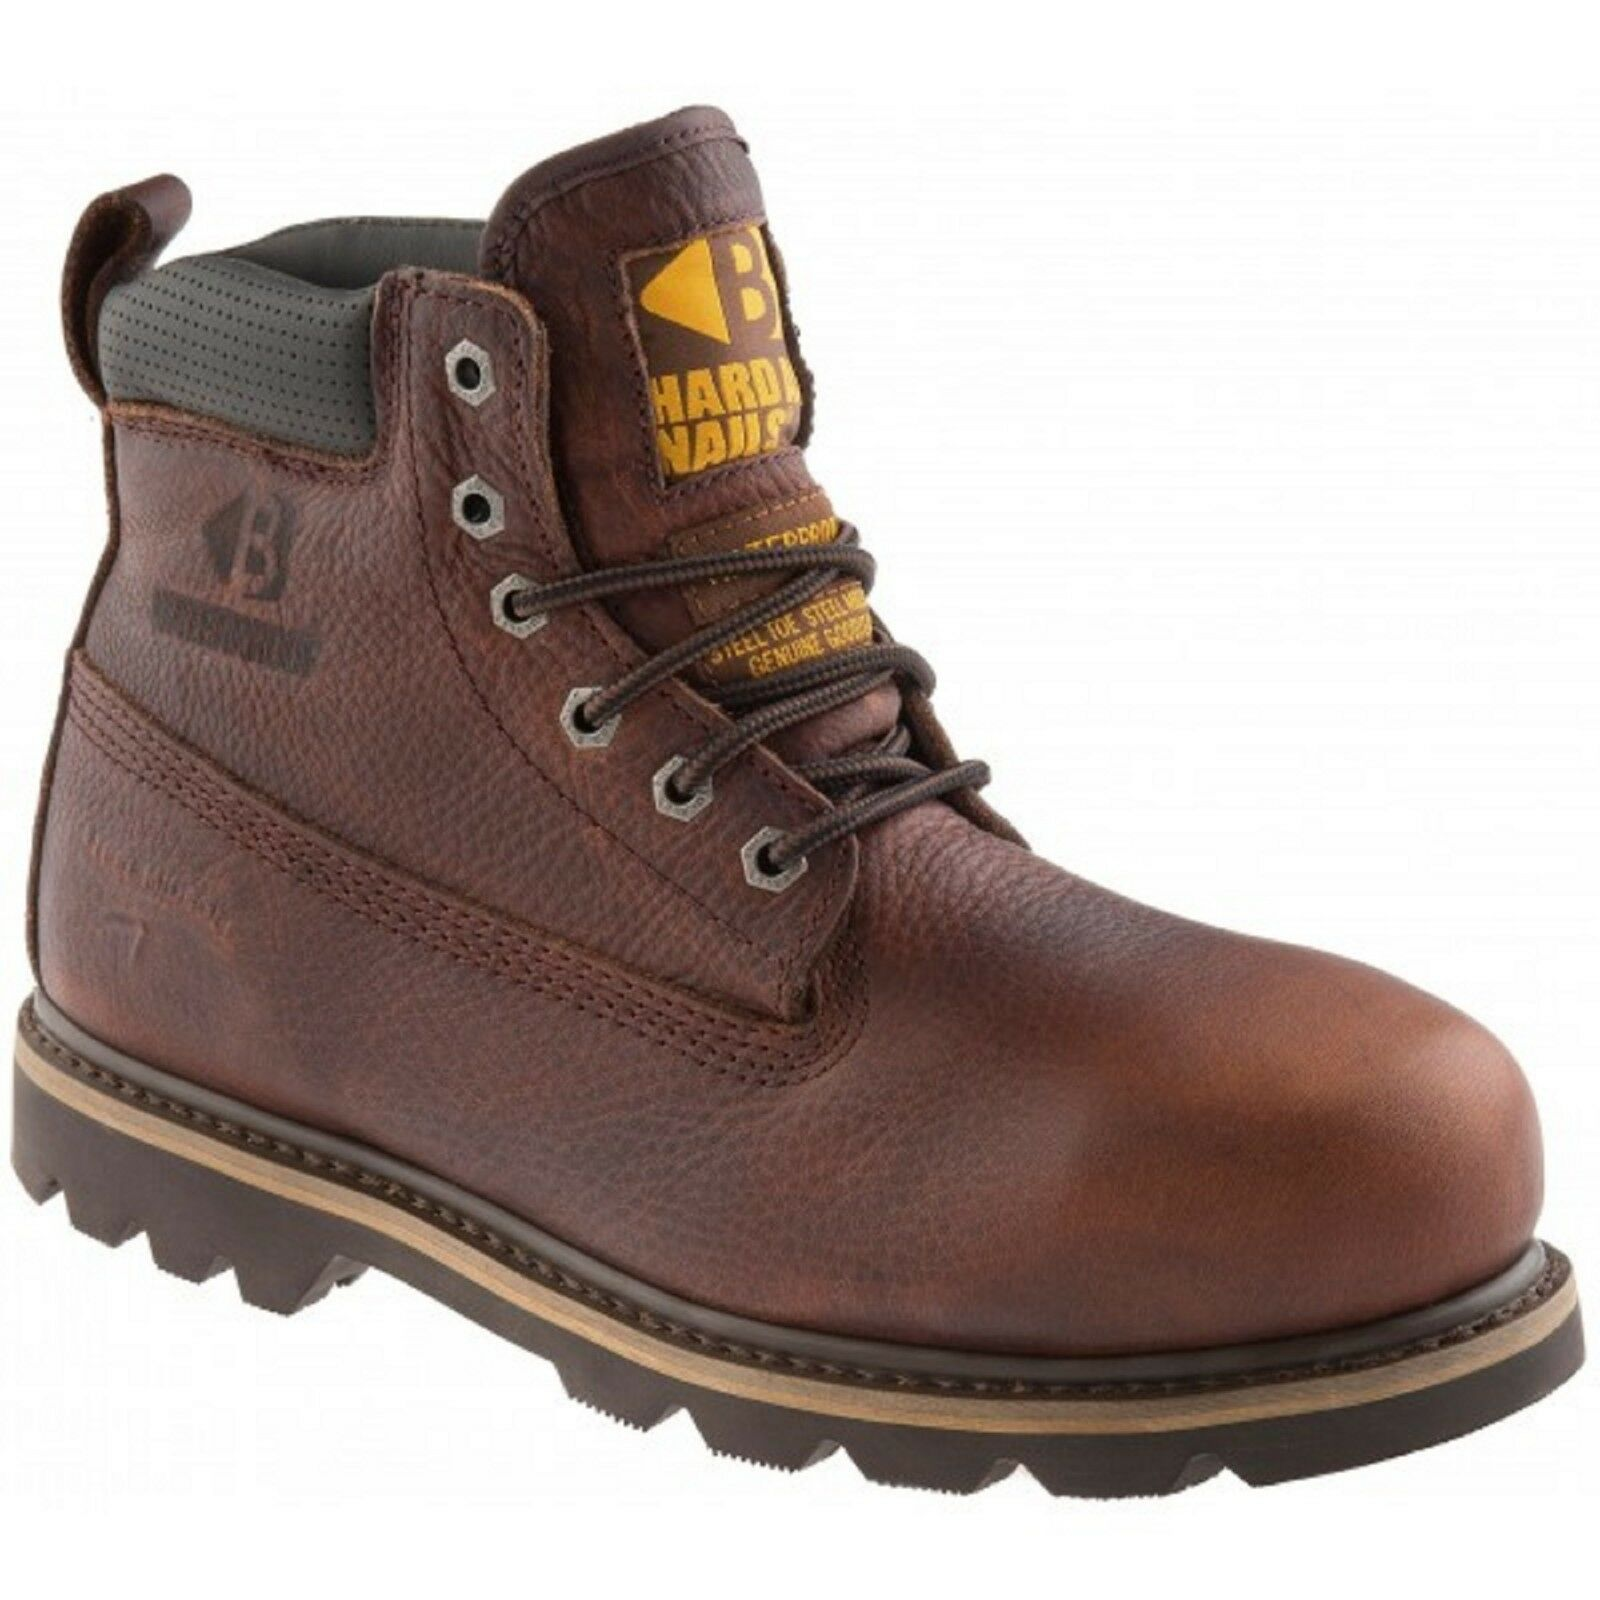 Buckler B750SMWP Waterproof Brown Safety Work Boots Dark Brown Waterproof Leather (Sizes 4-13) f72789